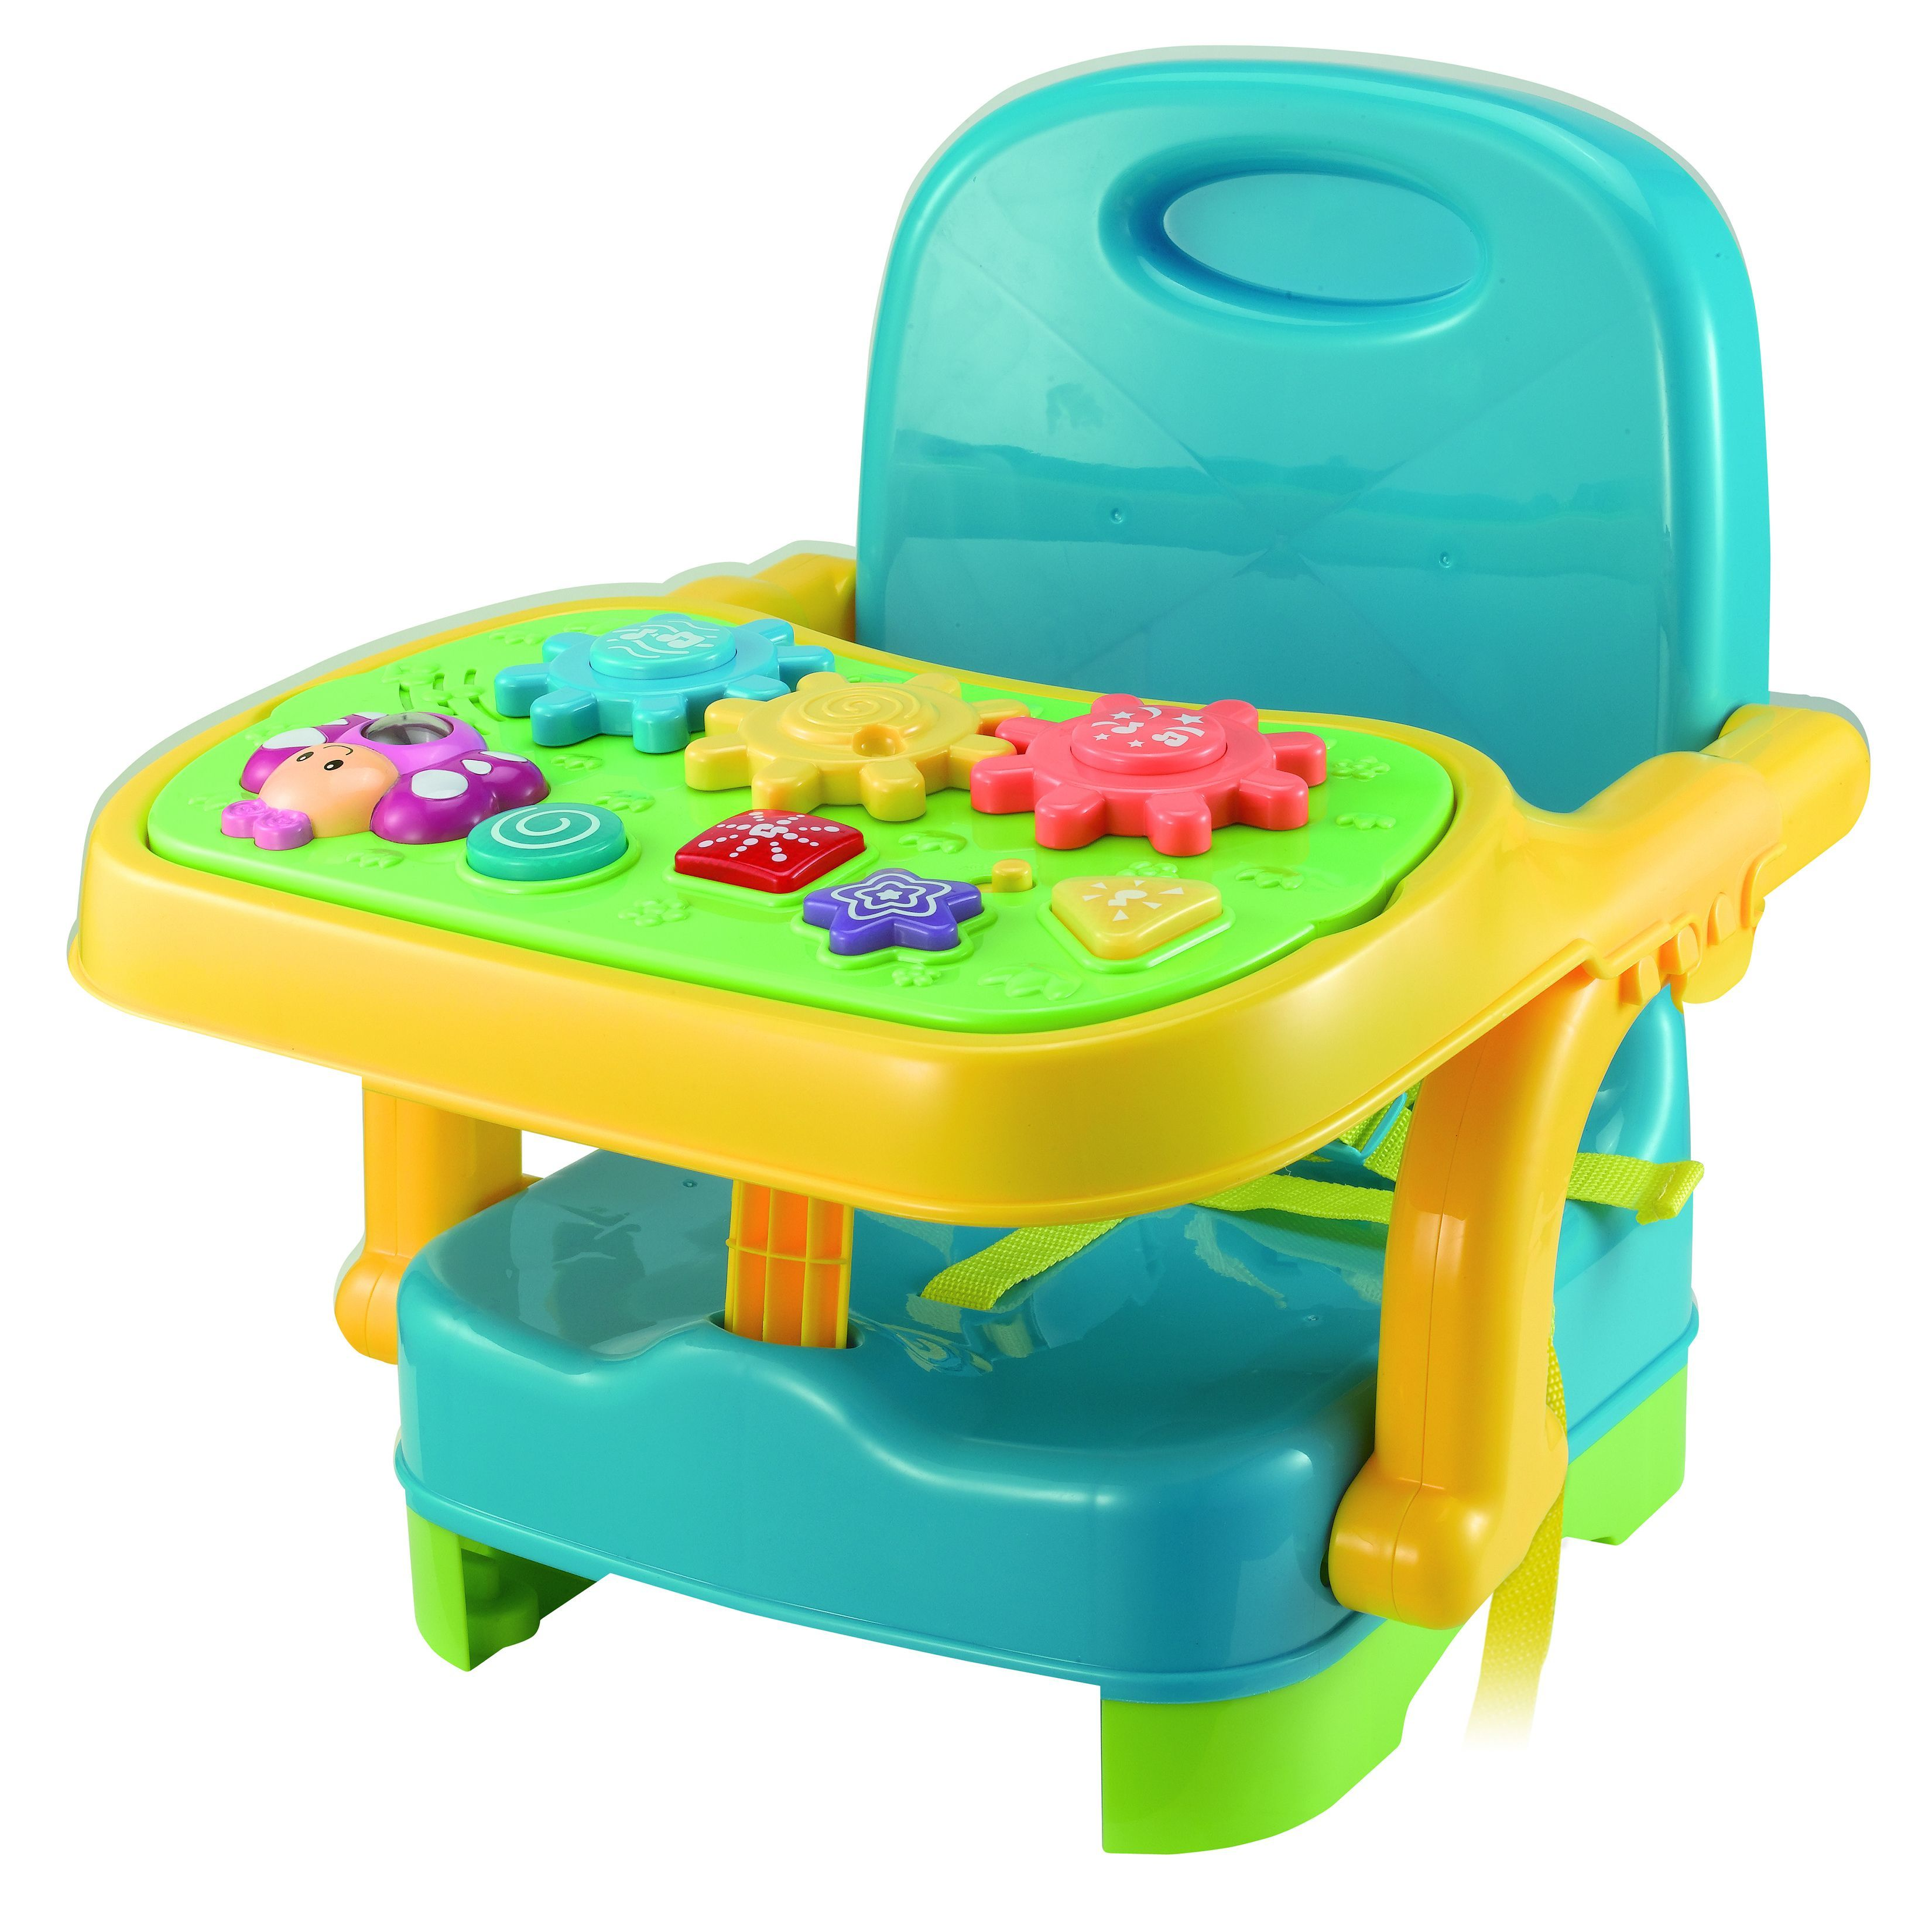 Little car toys  Winfat Musical Baby Booster Seat  Baby booster seat and Products